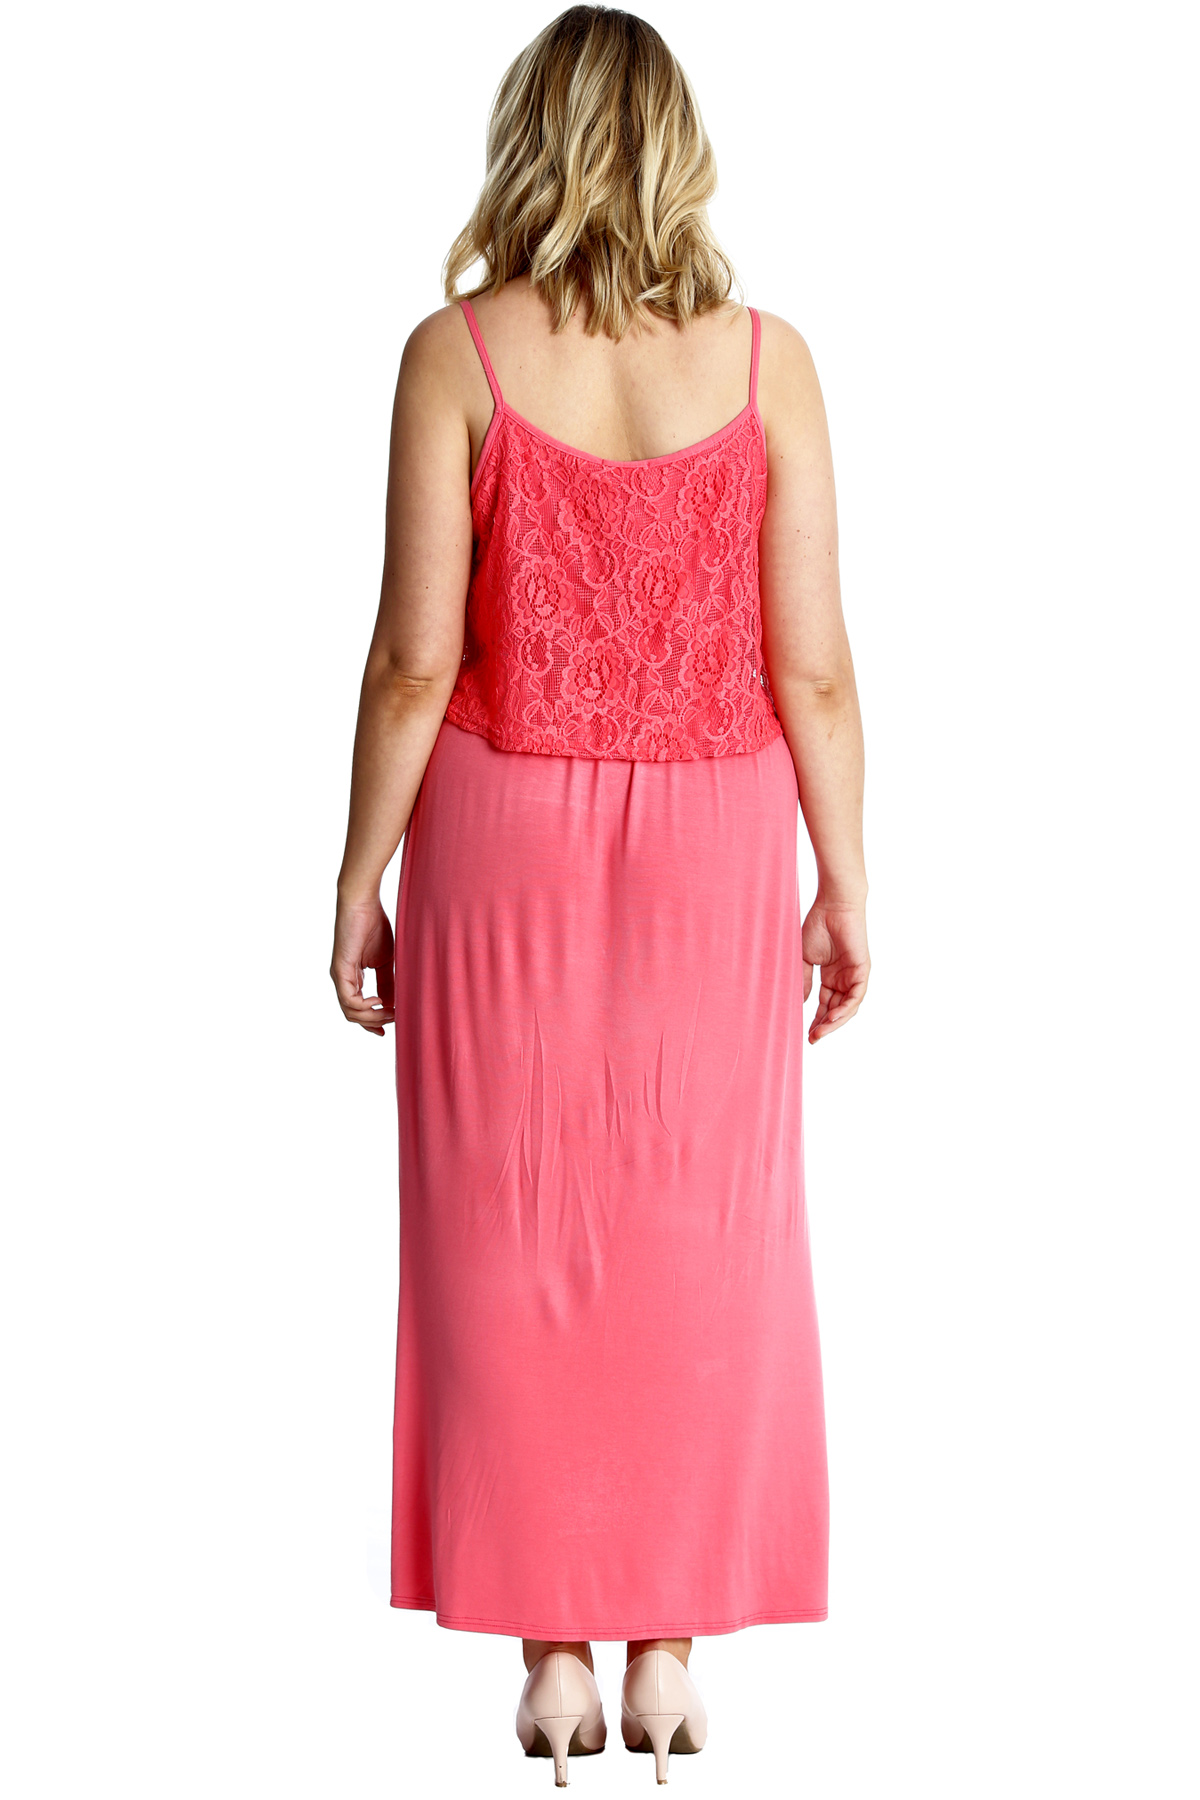 New Womens Maxi Dress Plus Size Ladies Floral Lace Full Length Sleeveless Summer Ebay